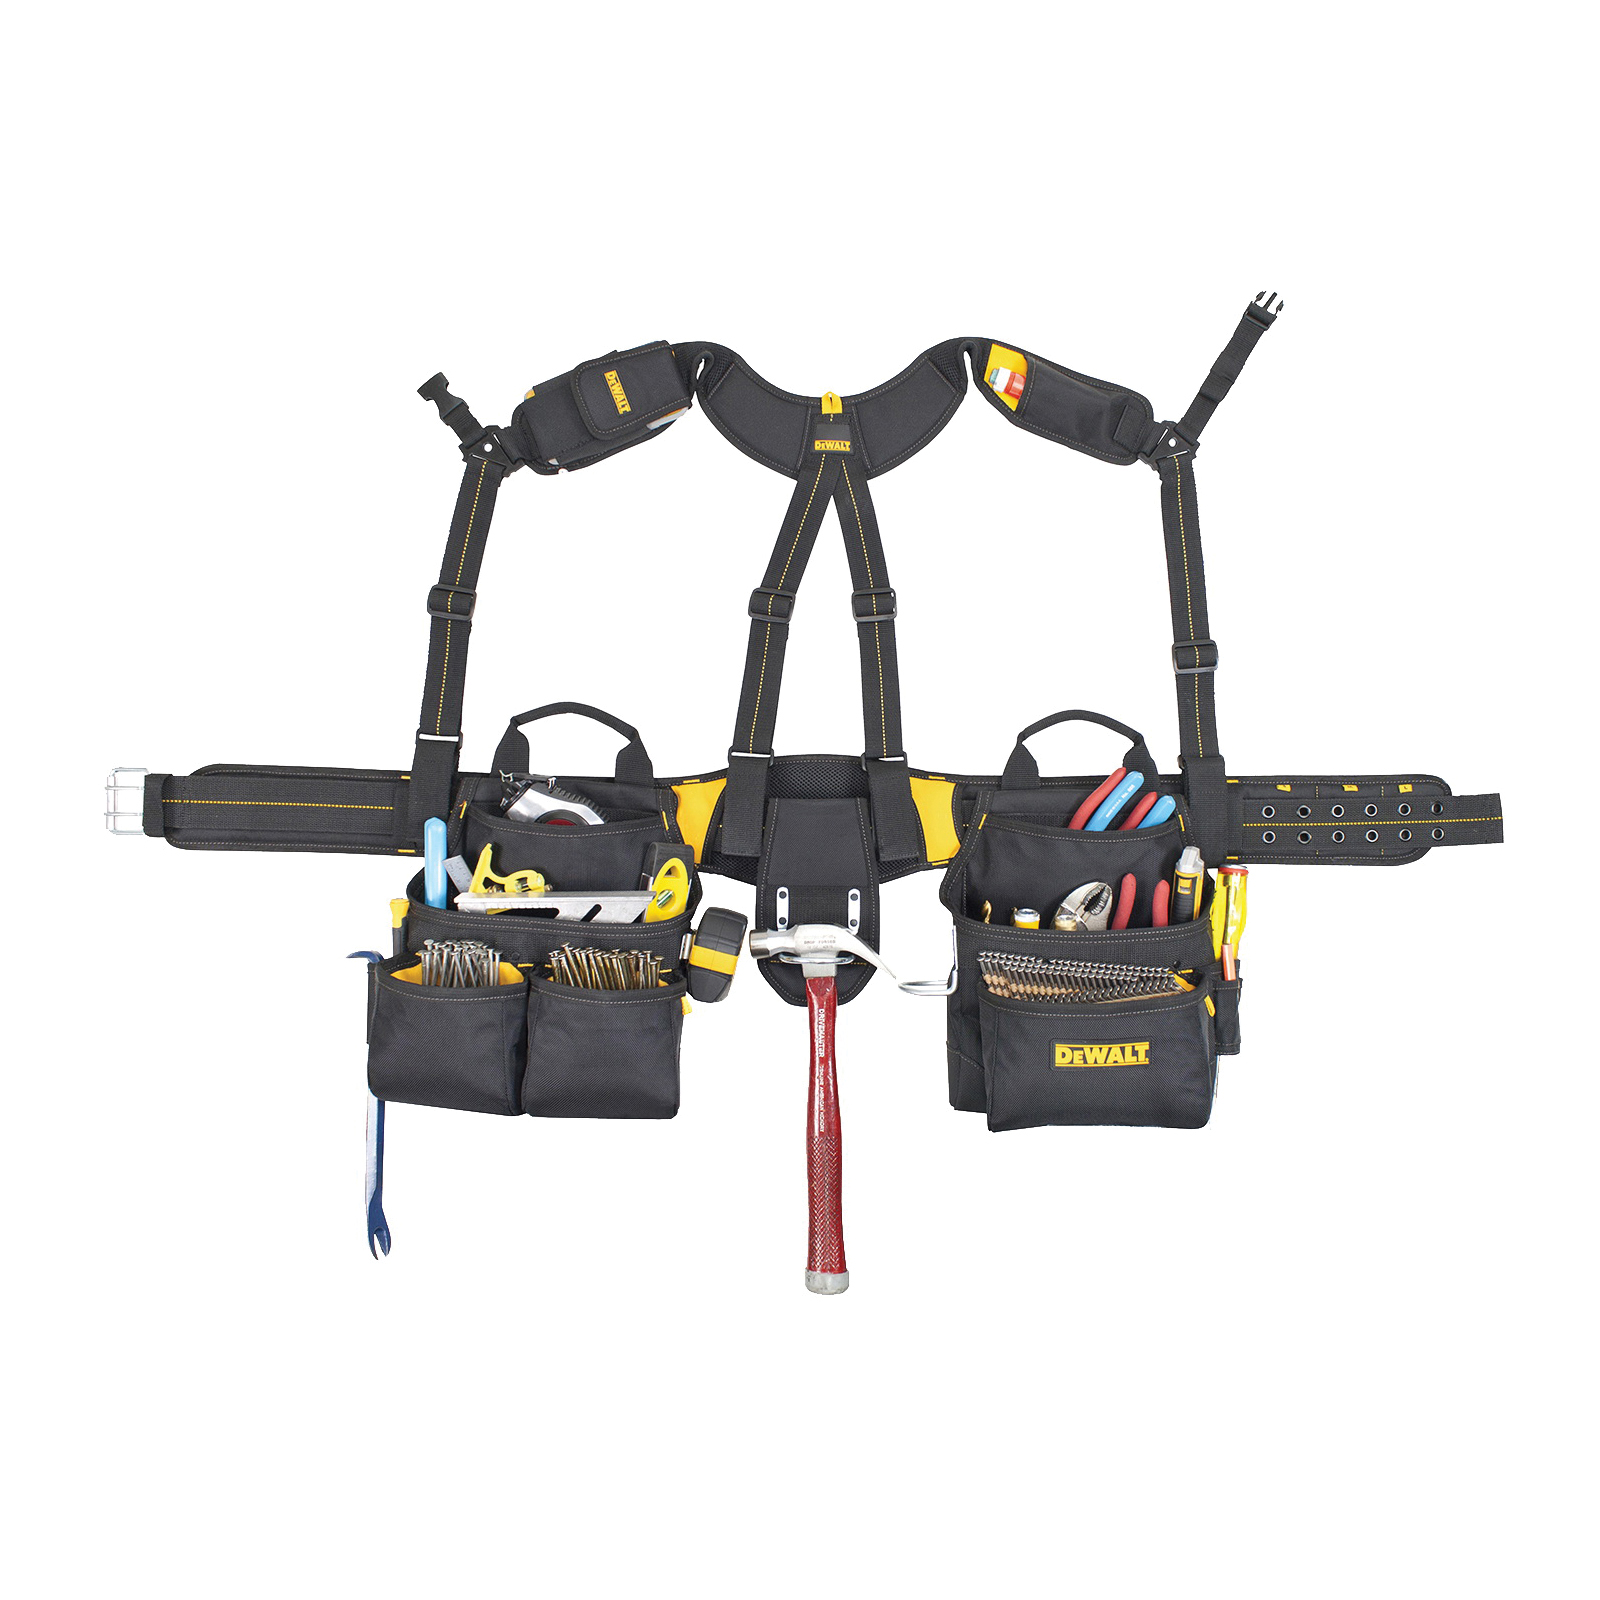 Picture of CLC DG5617 Tool Apron with Yoke Style Suspenders, 29 to 46 in Waist, Poly Fabric, Black, 20 -Pocket